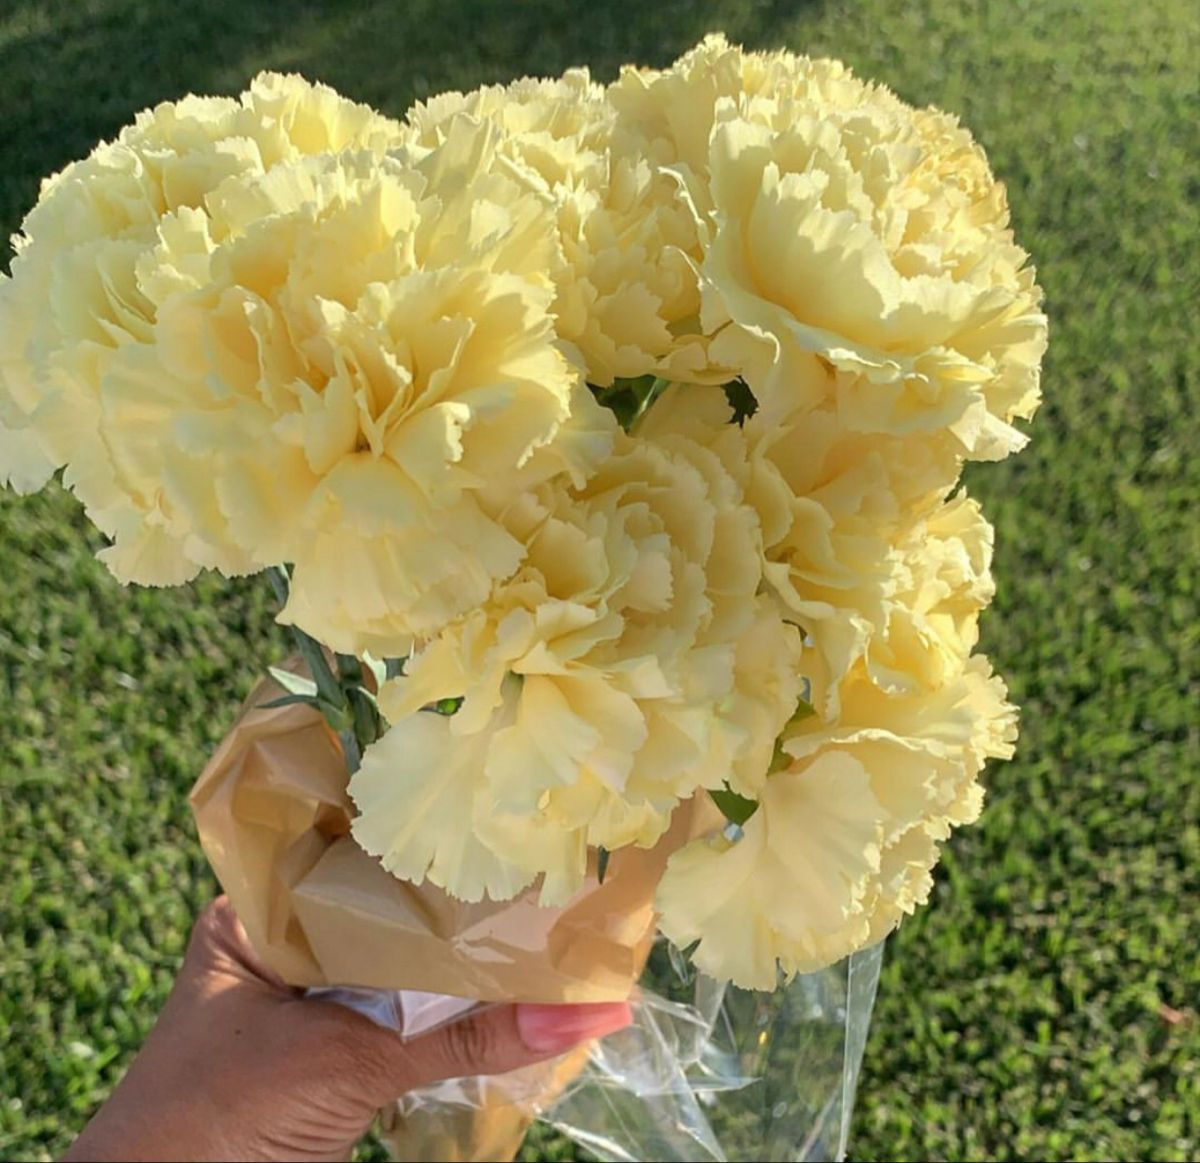 Yellow Carnations In 2020 Yellow Carnations Flowers For Sale Carnation Flower